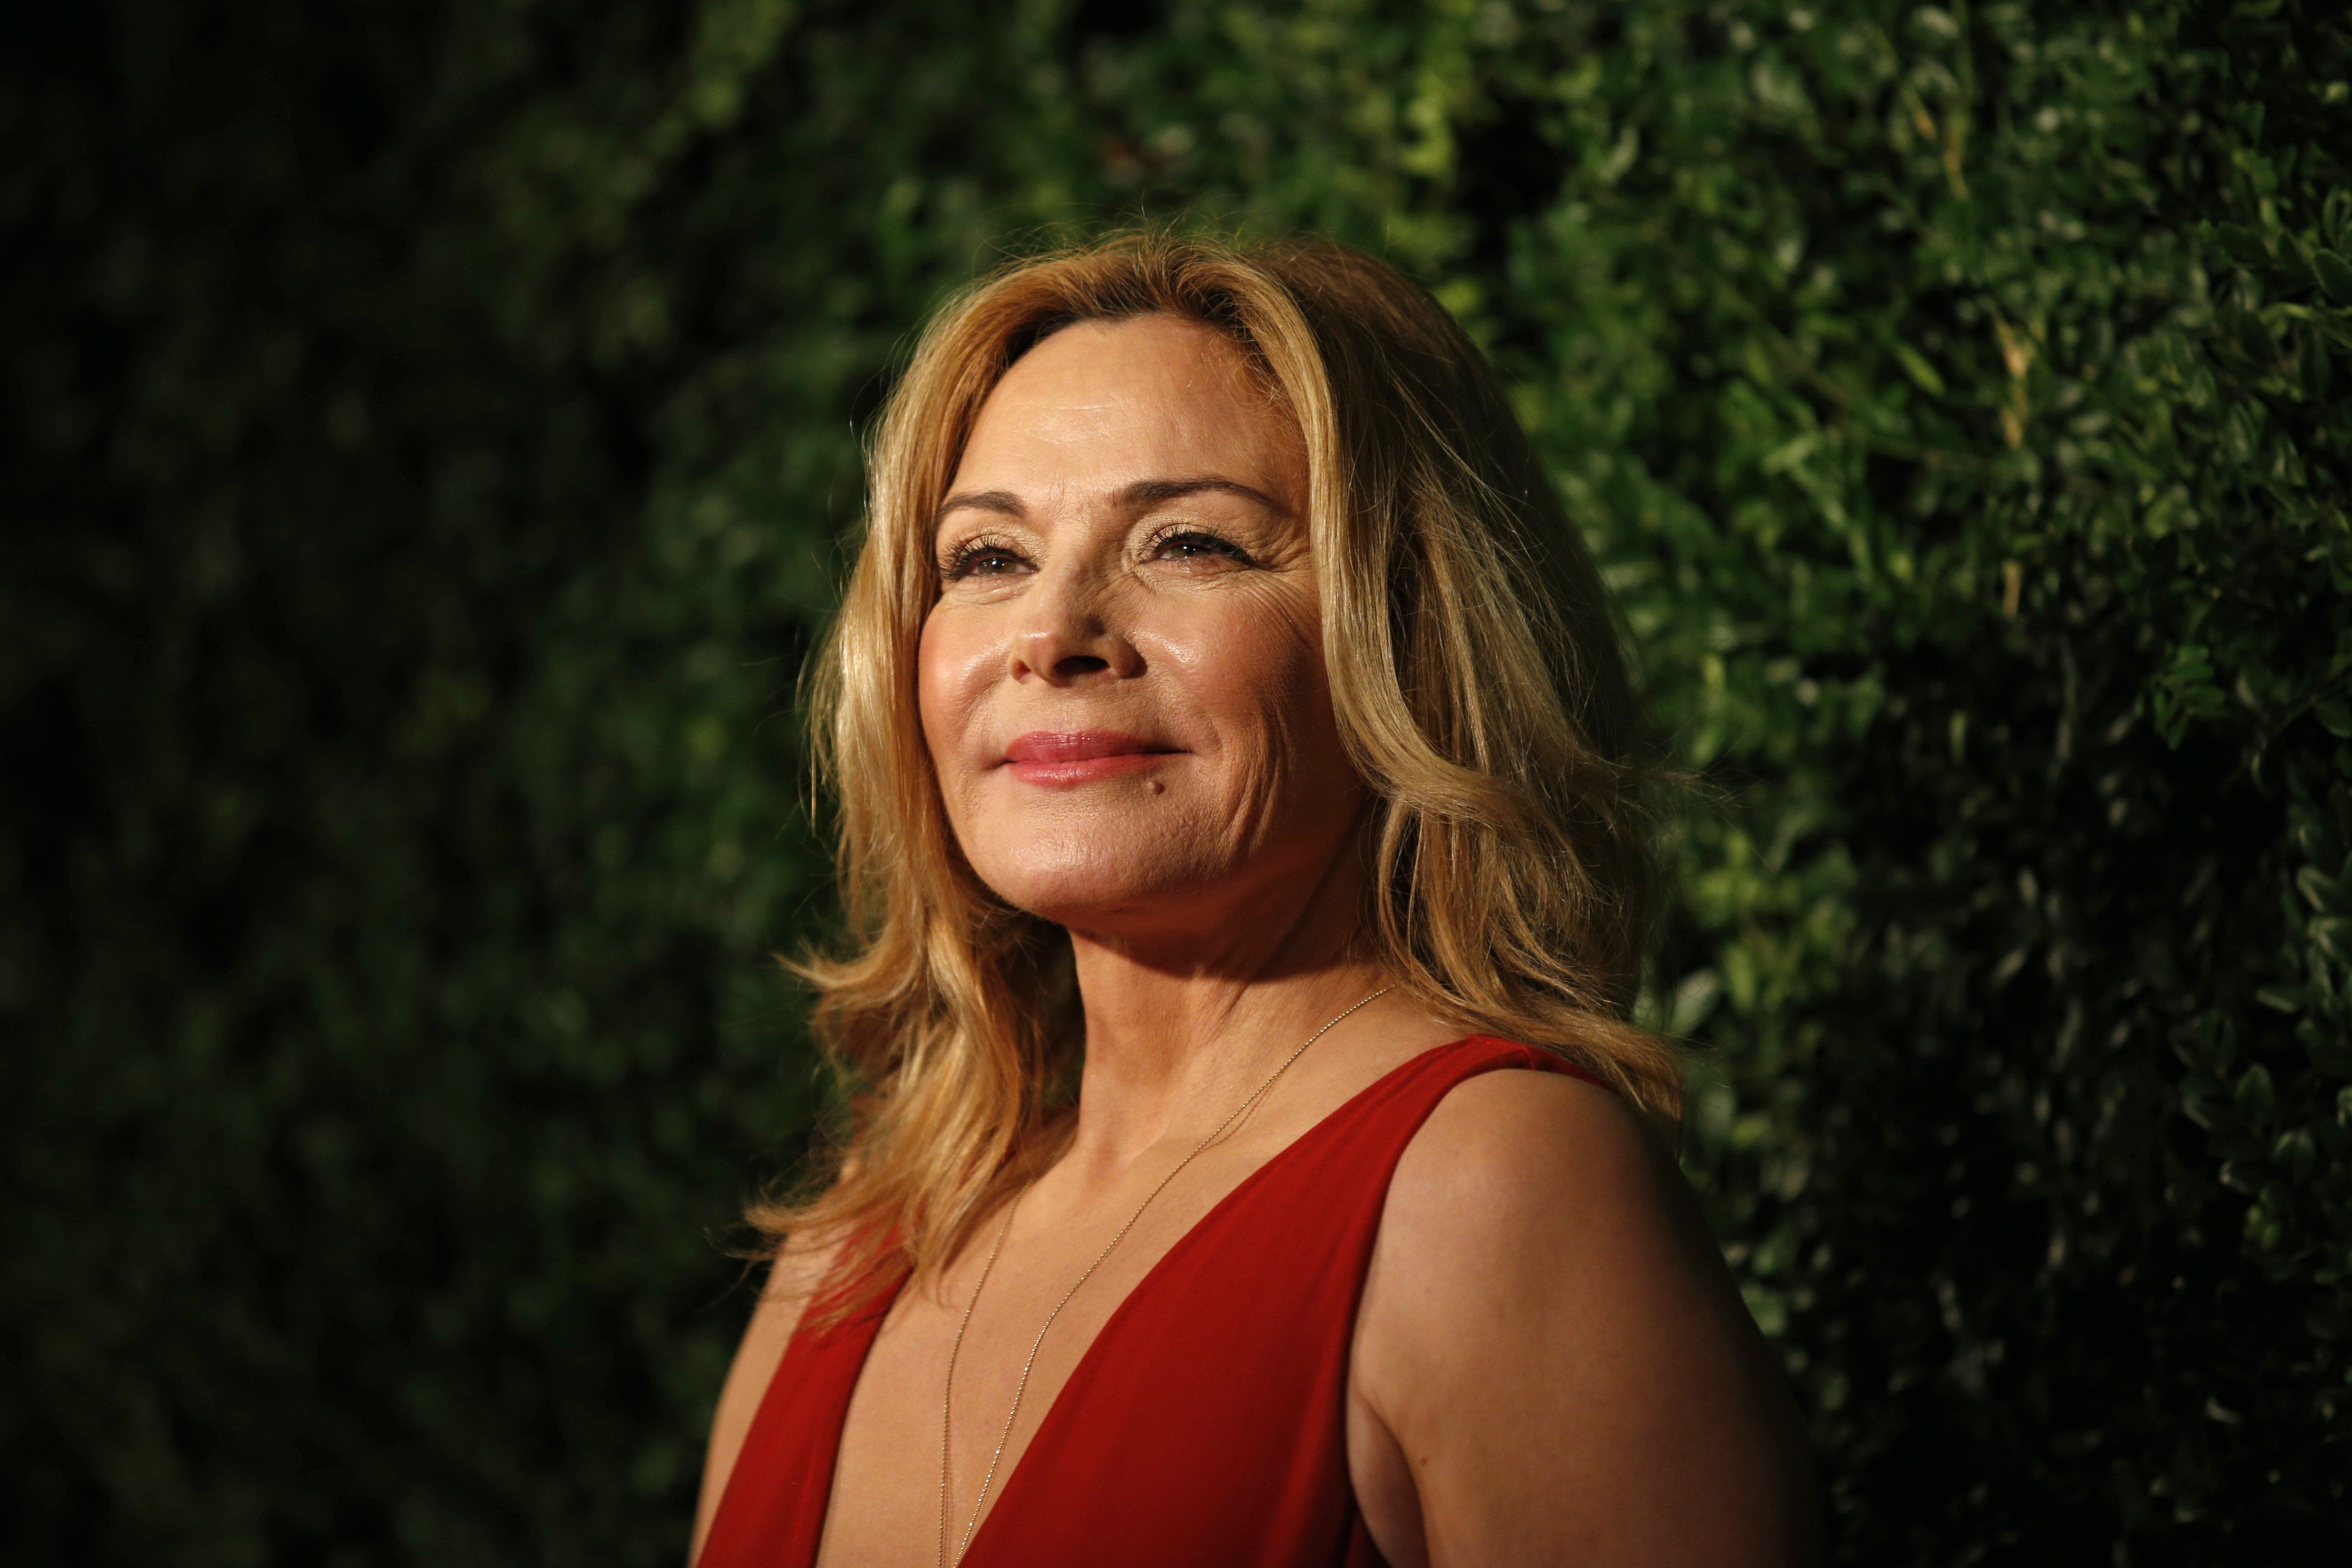 British-Canadian actress Kim Cattrall poses on the red carpet as she attends the 60th London Evening Standard Theatre Awards 2014 in London on November 30, 2014. AFP PHOTO / JUSTIN TALLIS        (Photo credit should read JUSTIN TALLIS/AFP/Getty Images)